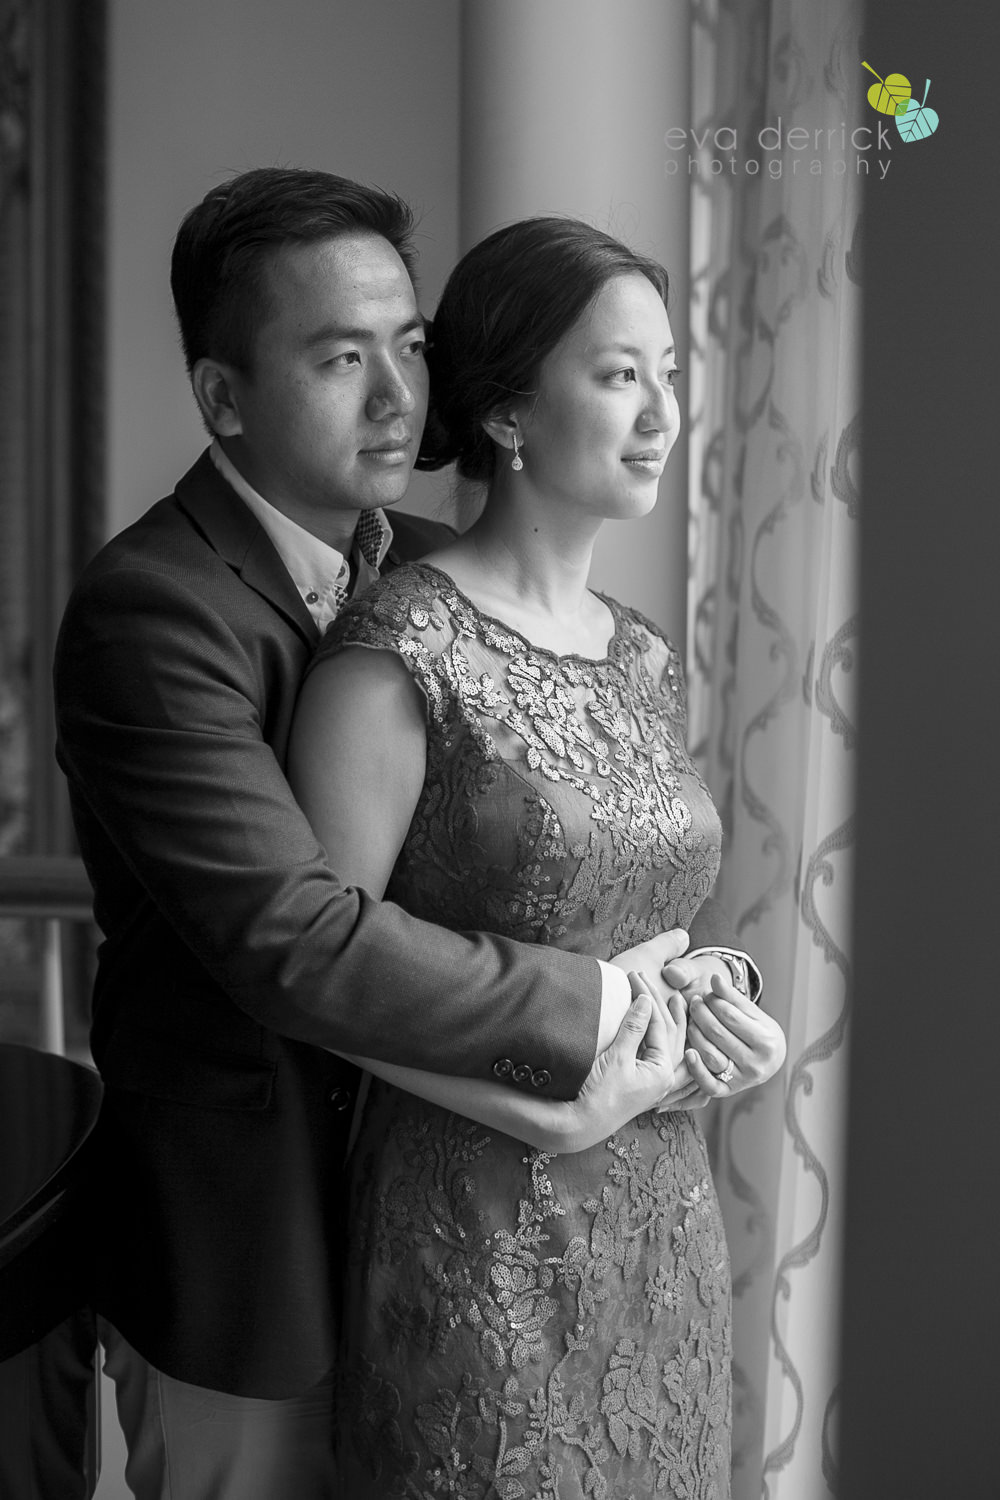 Niagara-on-the-Lake-wedding-photographer-tea-ceremony-queens-landing-wedding-photo-by-eva-derrick-photography-0009.JPG